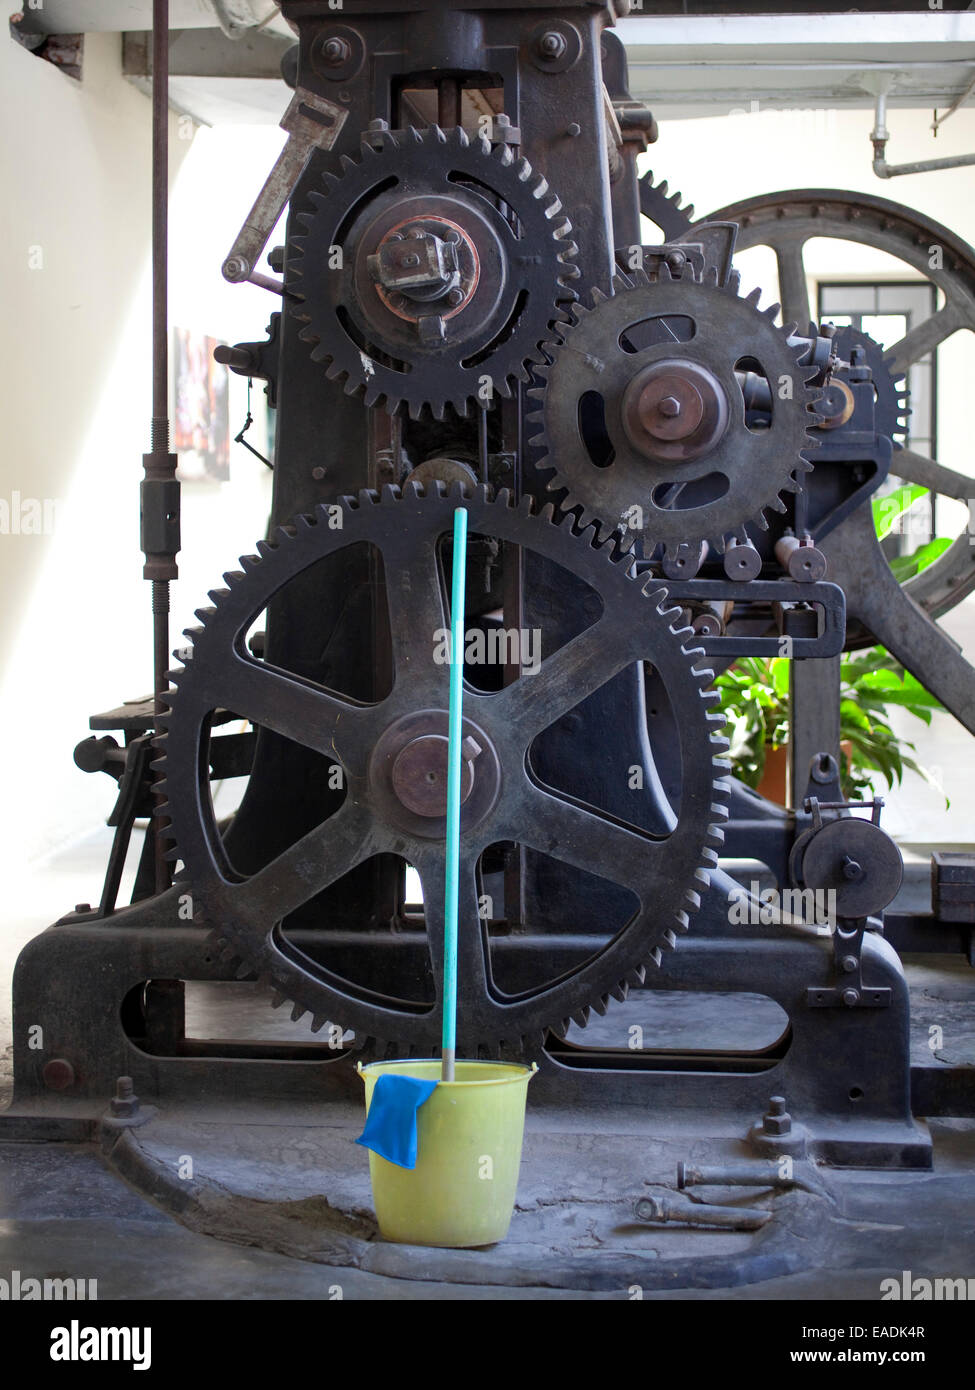 Room with Old Machine Gears and mop and bucket - Stock Image